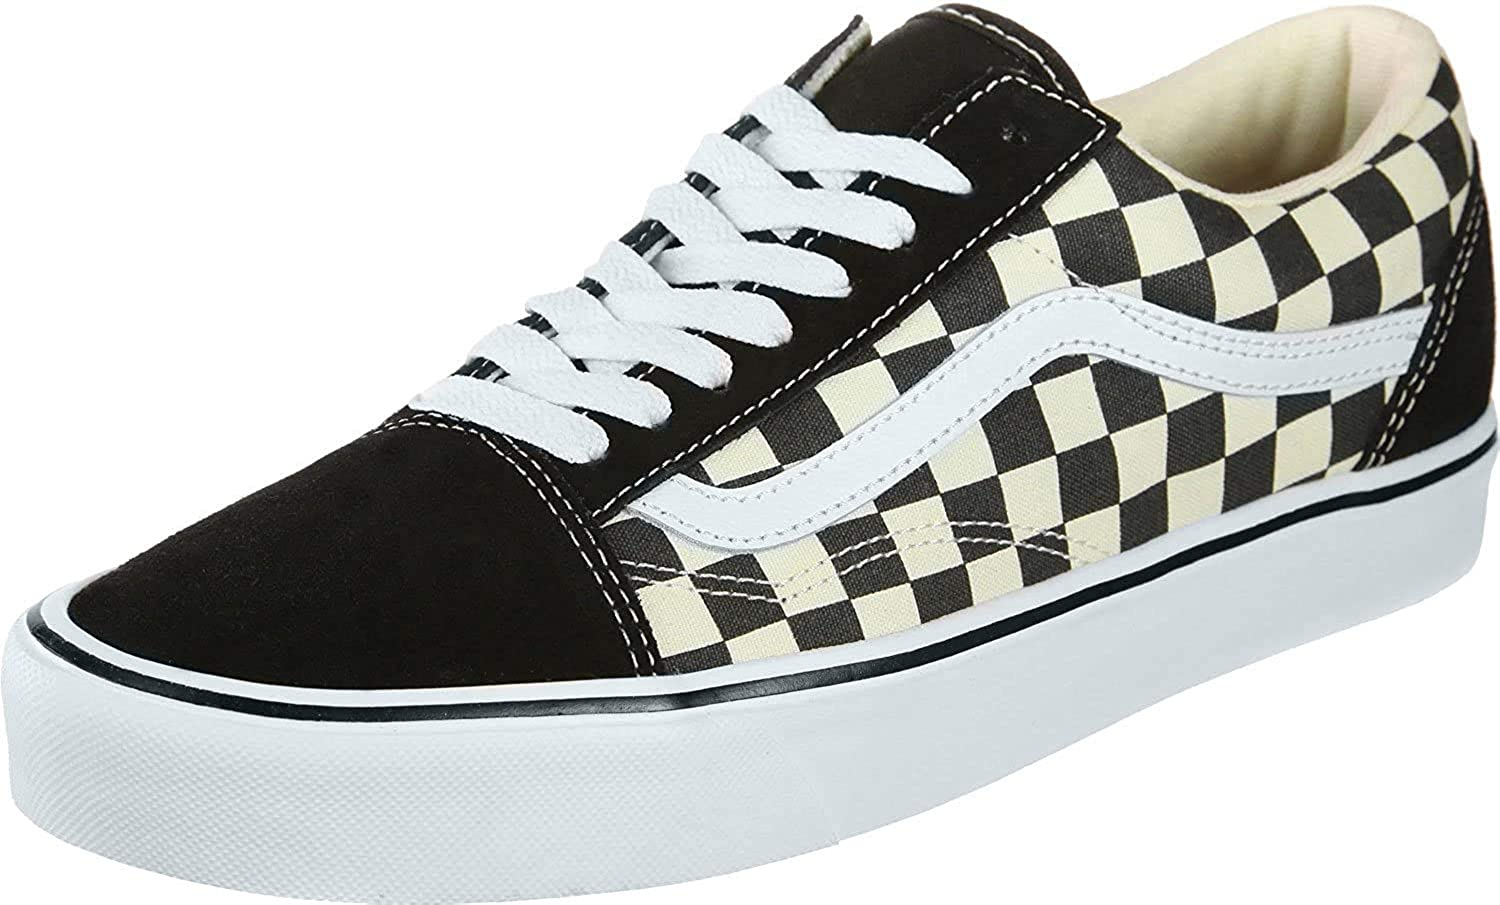 Vans Unisex Old Skool Lite Checkerboard Lace Up Trainer Black White Black 8 Fashion Sneakers